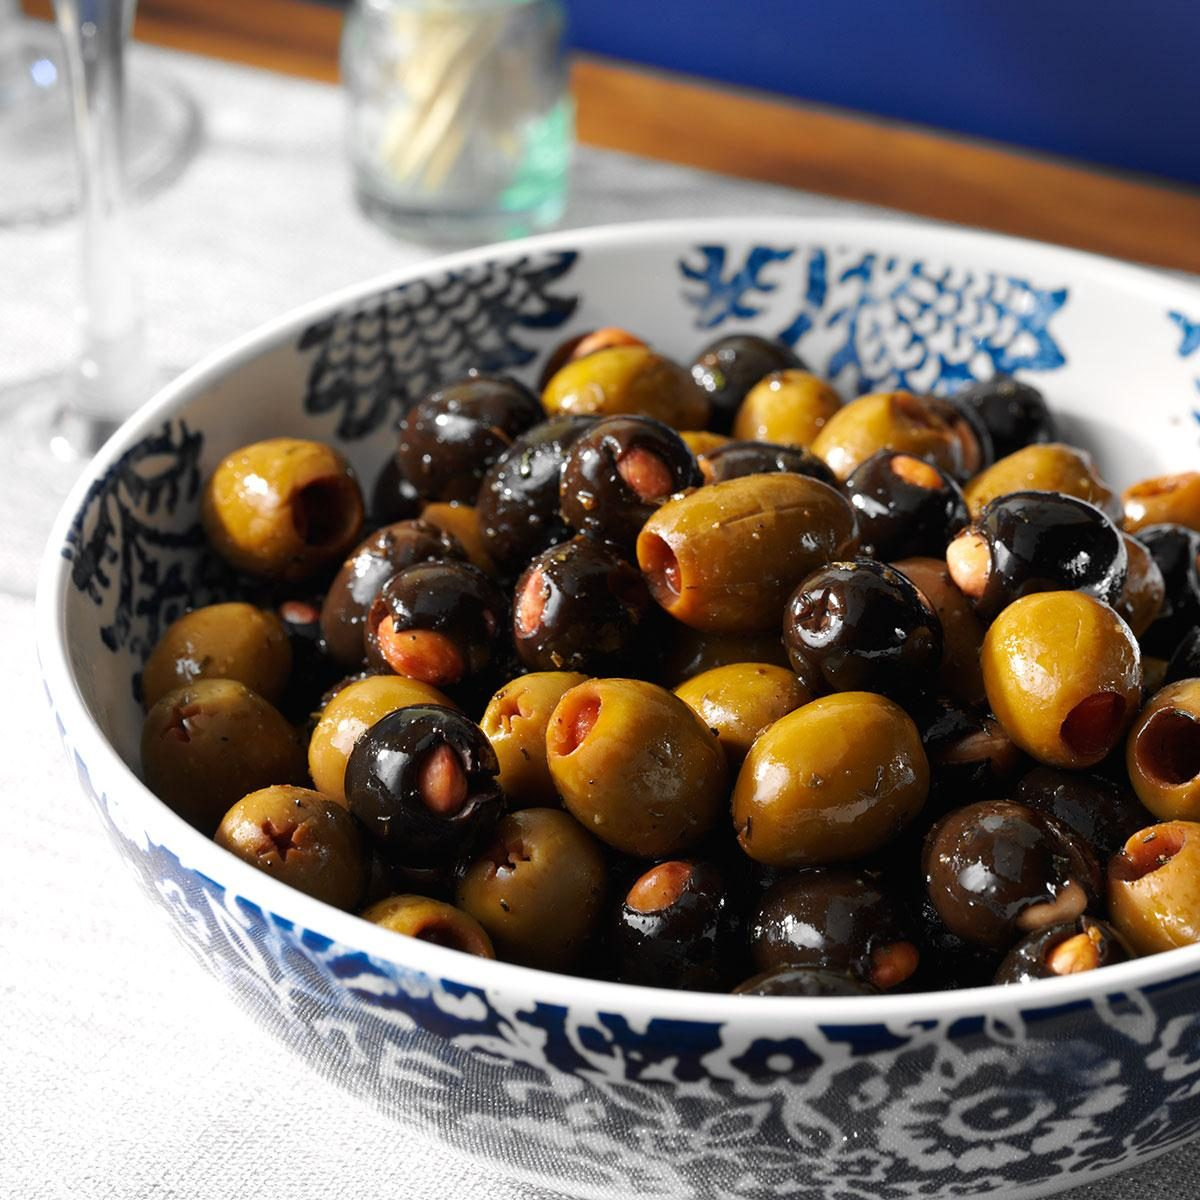 Easy Italian Desserts For A Crowd: Marinated Almond-Stuffed Olives Recipe